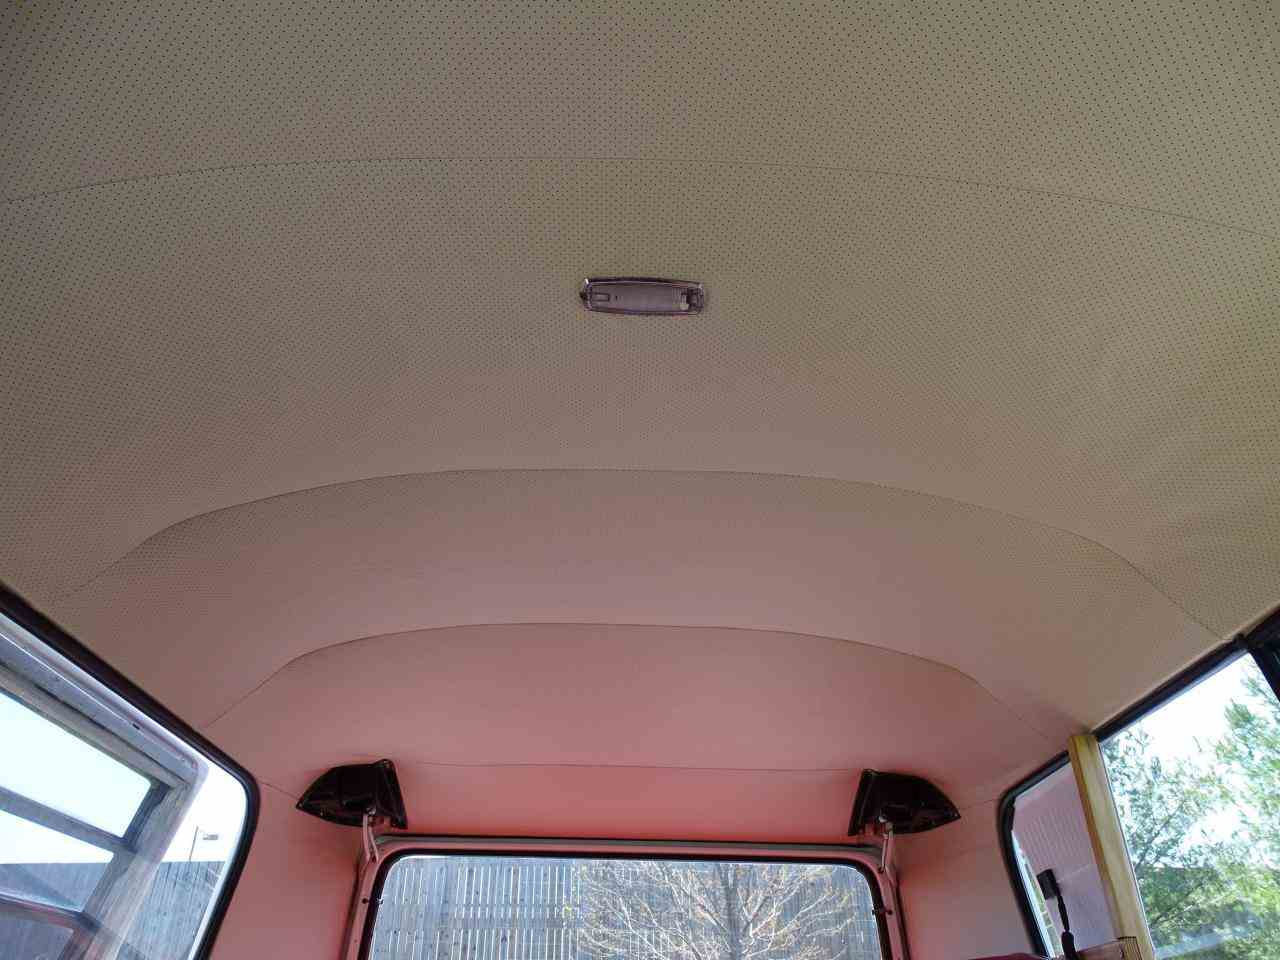 Large Picture of 1974 Westfalia Camper located in Illinois Offered by Gateway Classic Cars - St. Louis - NEEL